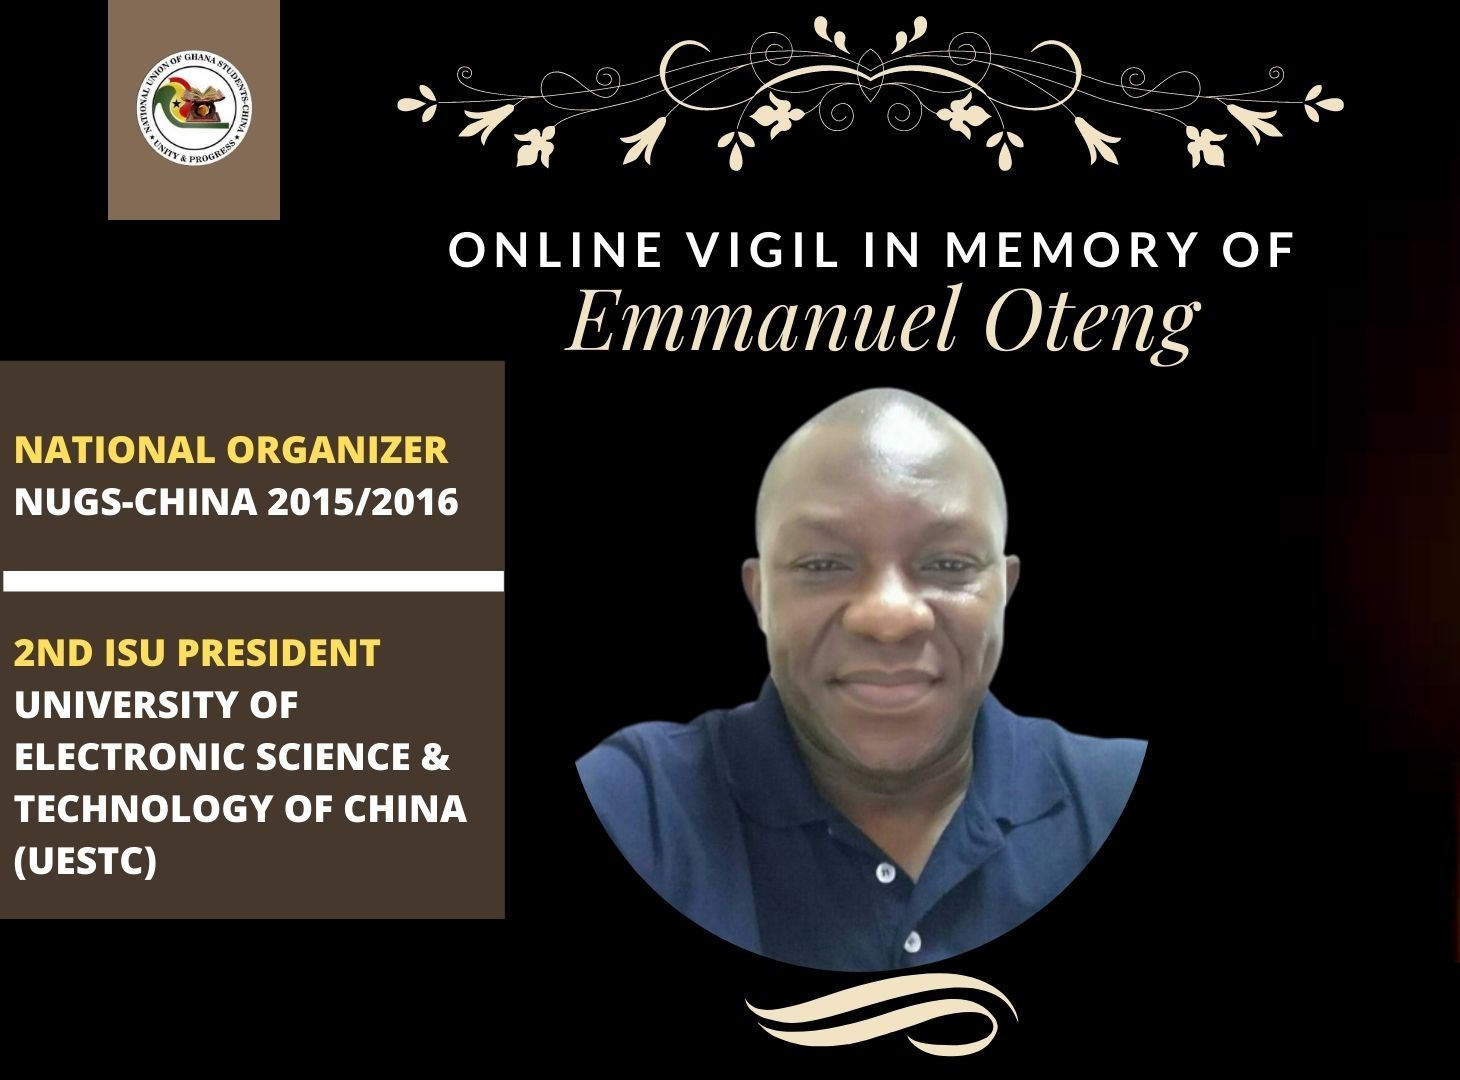 ONLINE VIGIL FOR THE LATE EMMANUEL OTENG